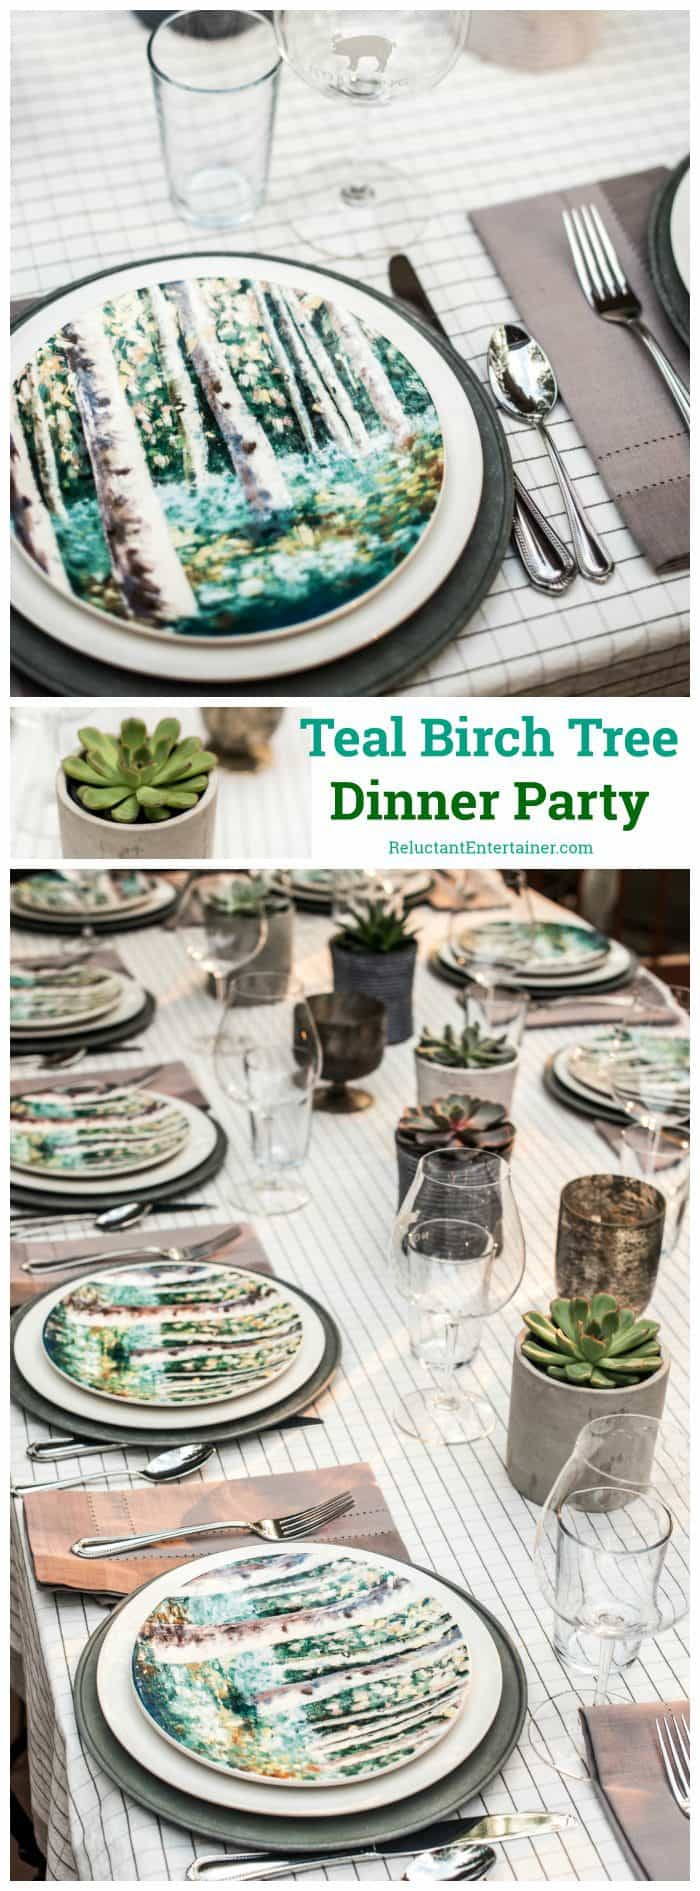 Teal Birch Tree Dinner Party